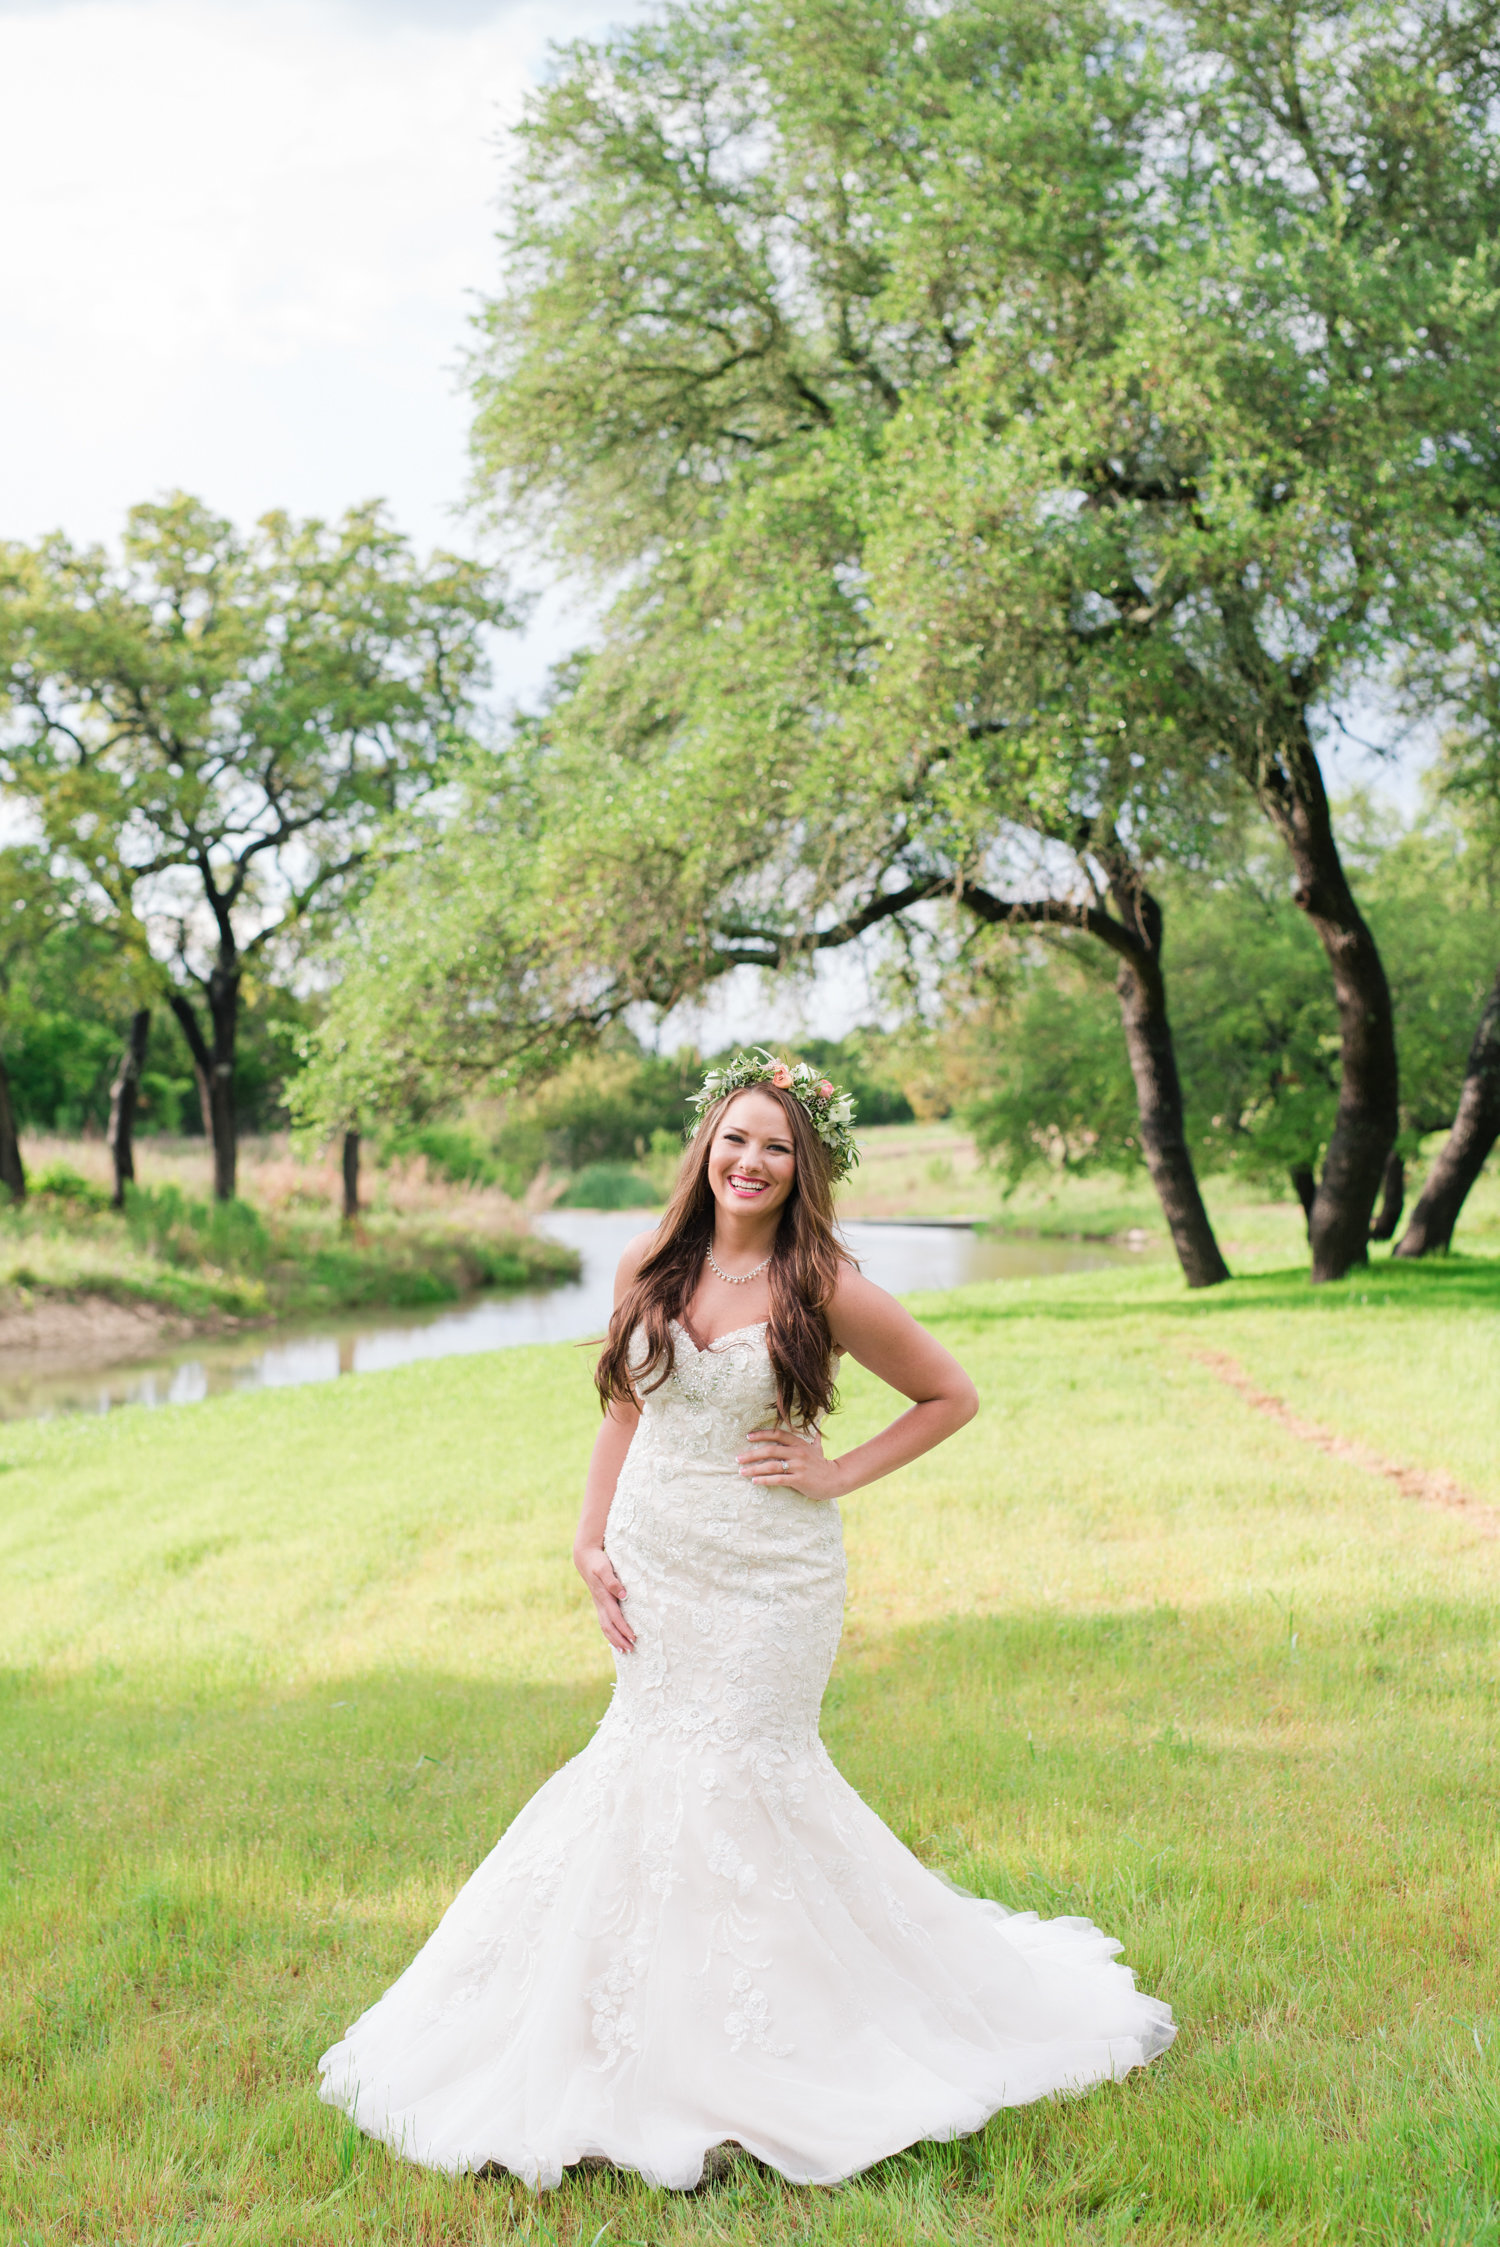 Bridal Portraits at The Creek Haus of Vista West Ranch in Dripping Springs, Texas